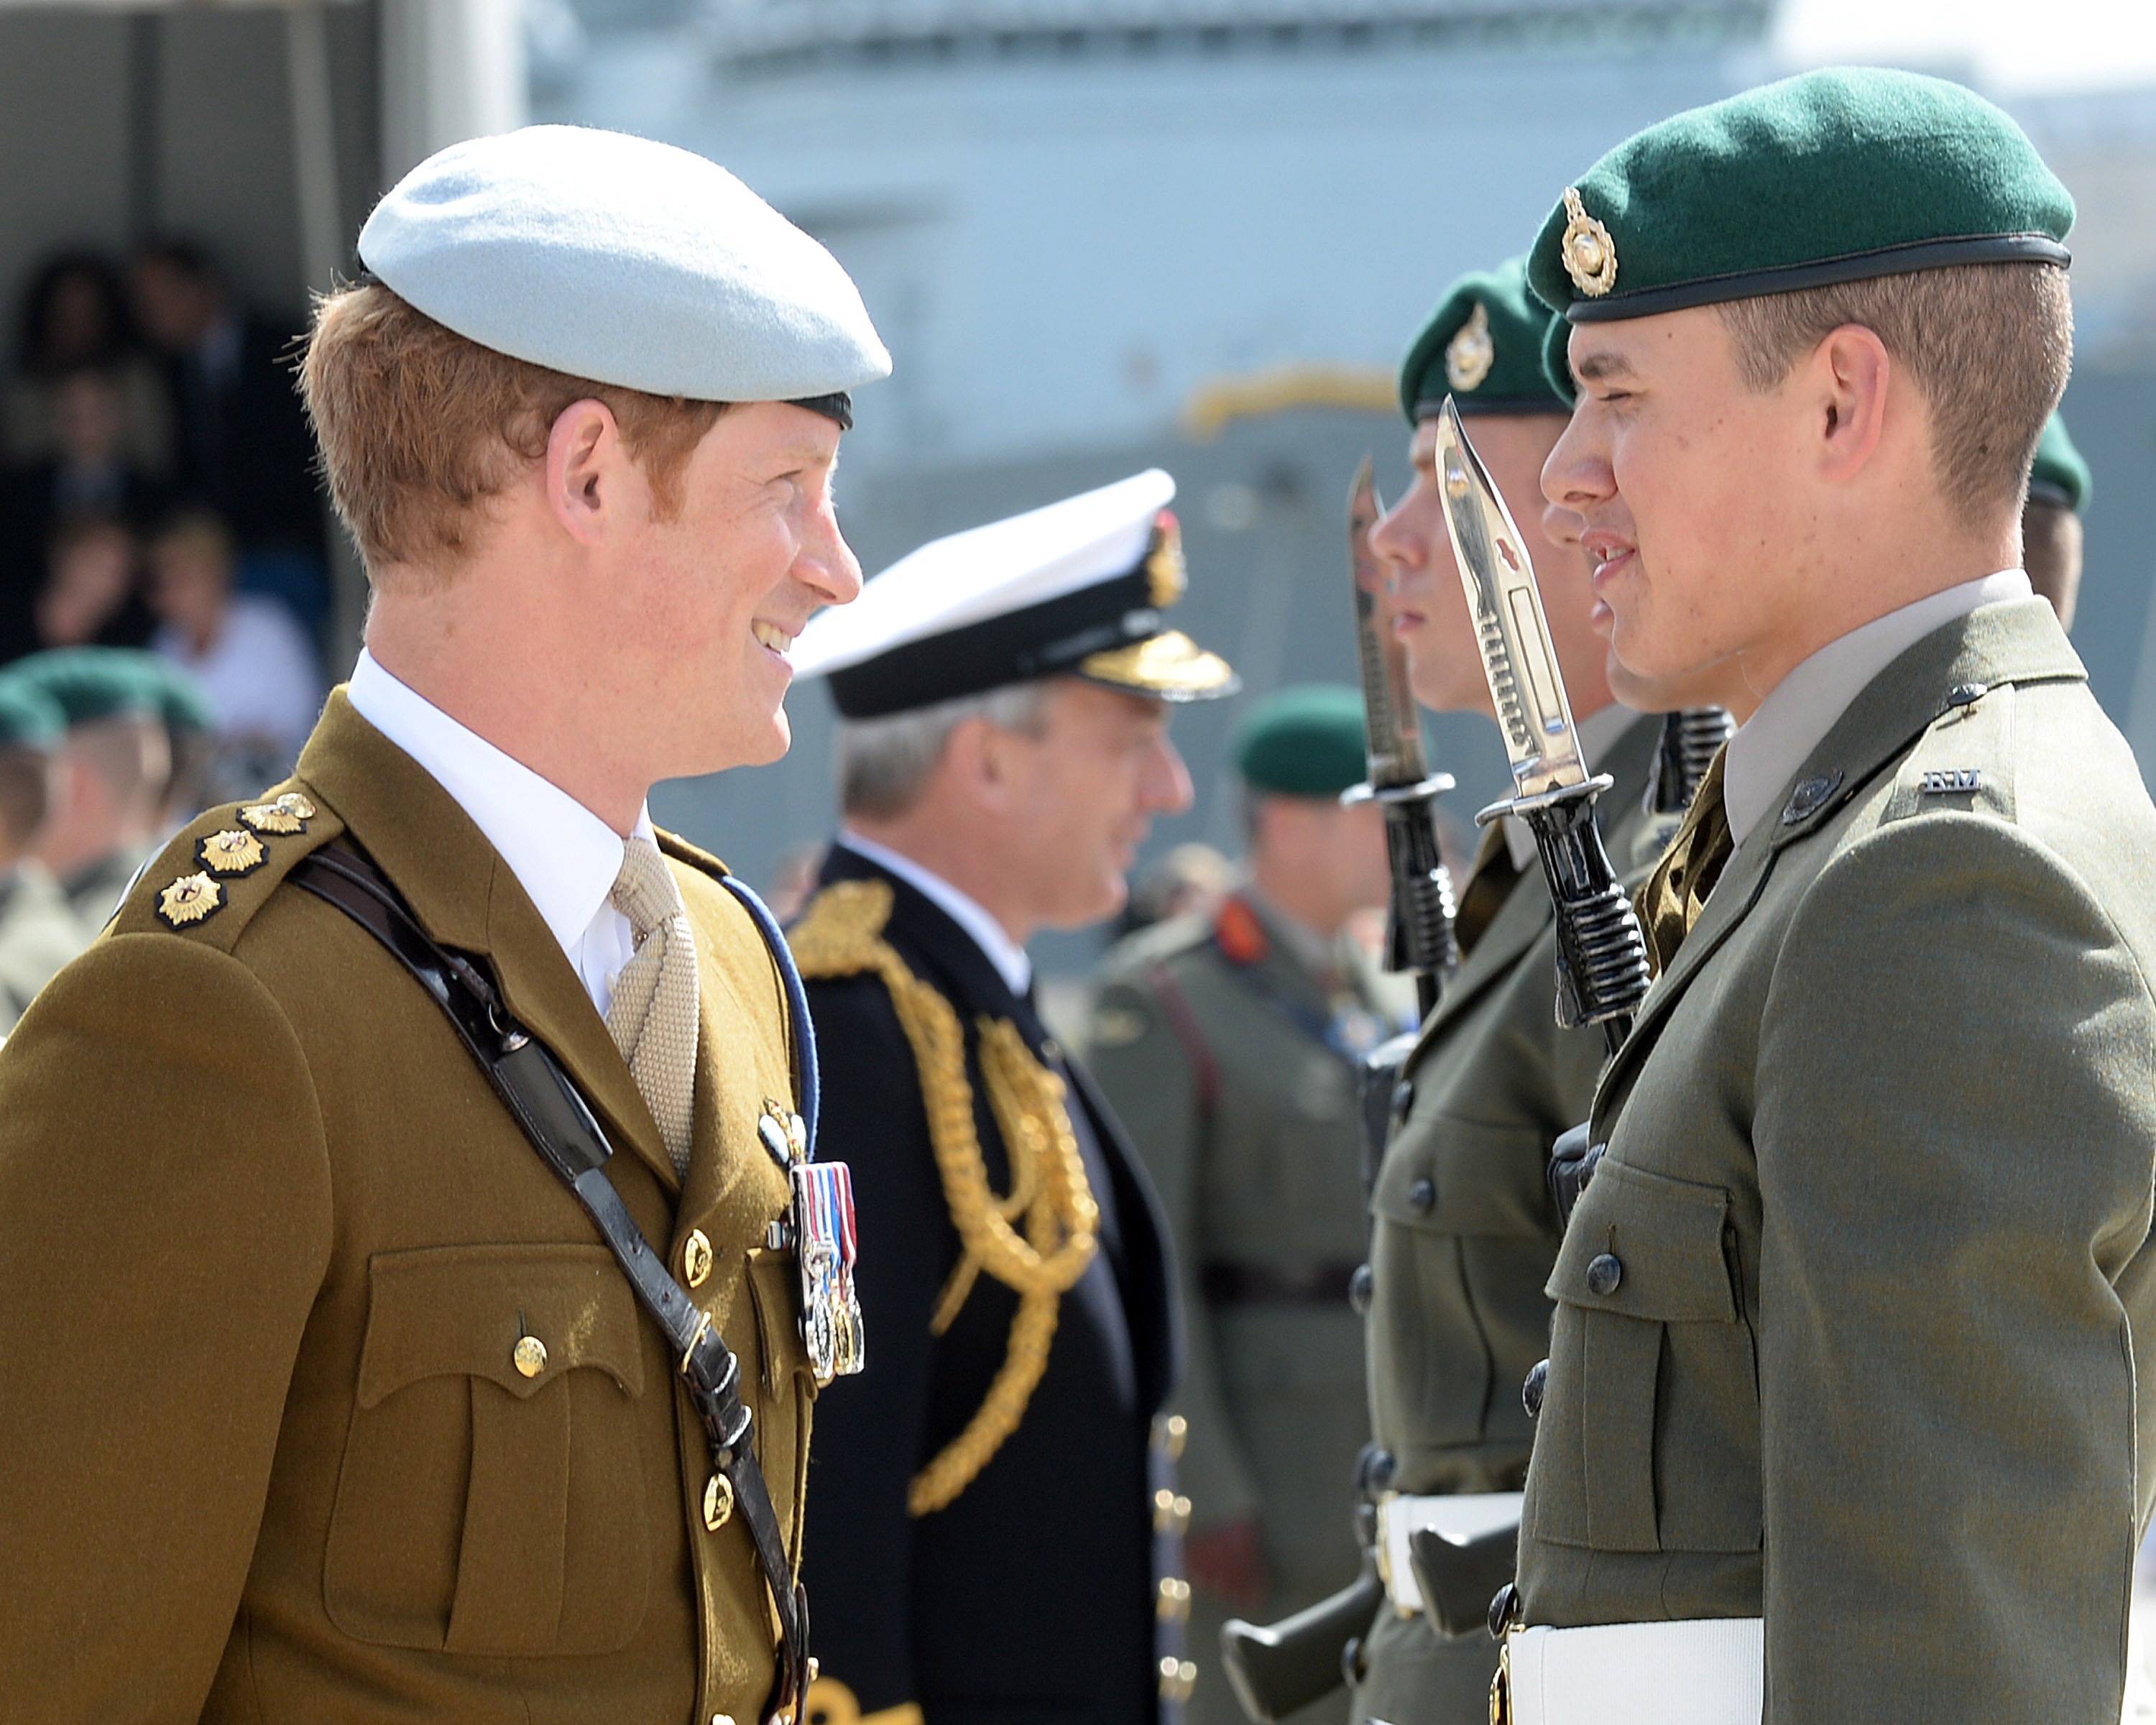 Prince Harry opening the Royal Navy's amphibious excellence in Plymouth